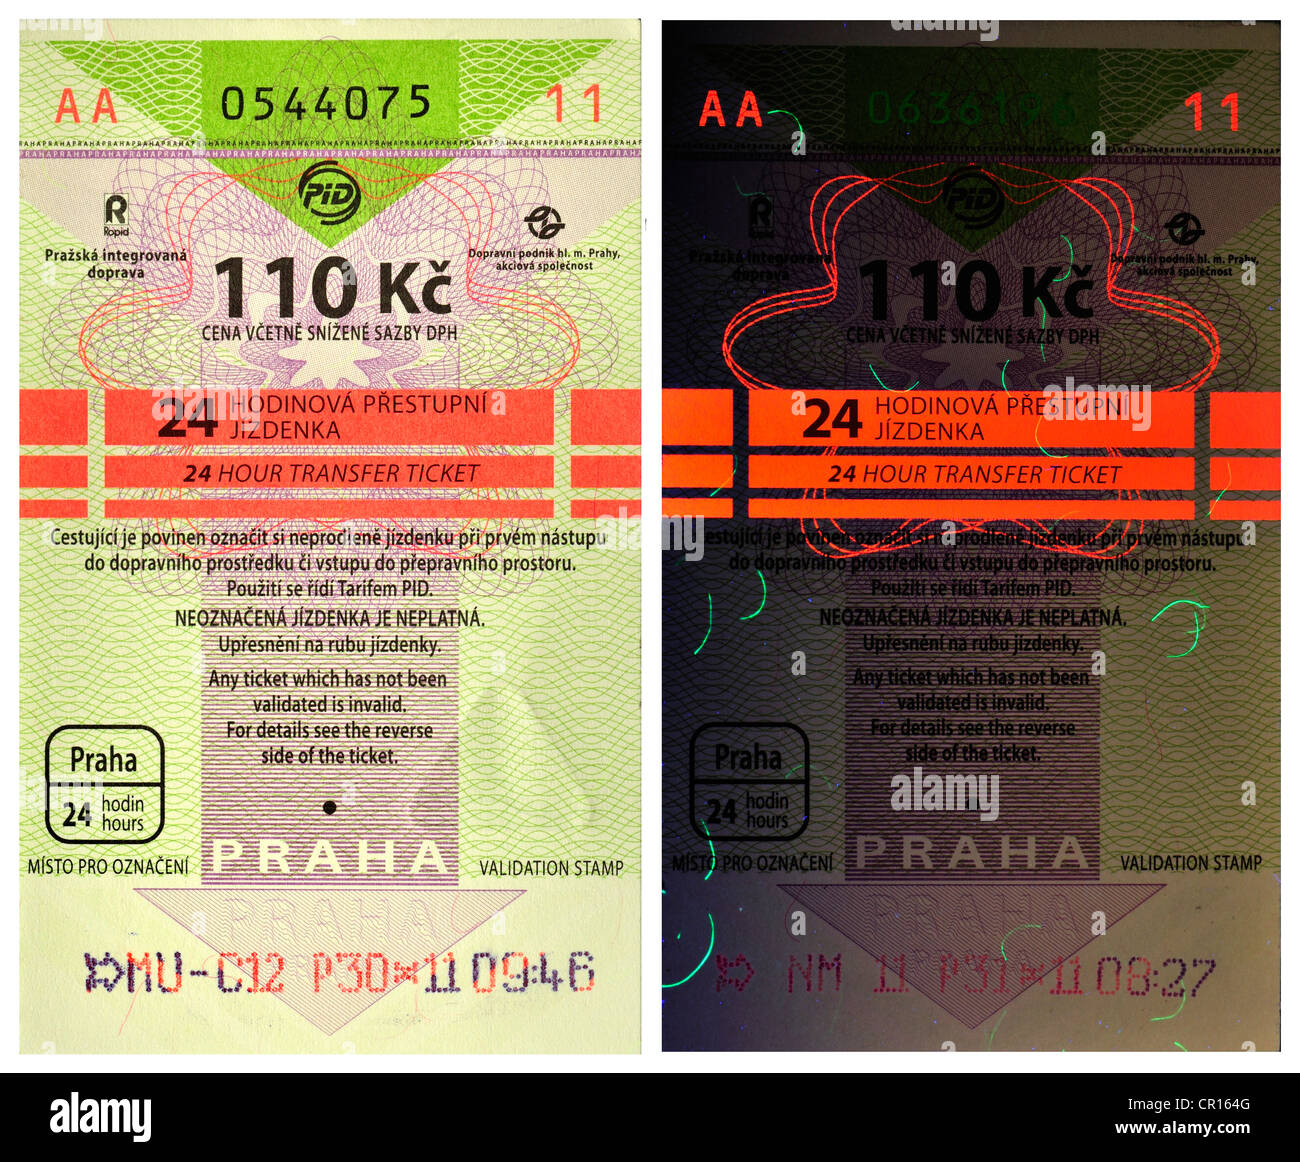 Prague public transport tickets - 24hr ticket - 110Kc crowns. Security features under UV light (right) - Stock Image